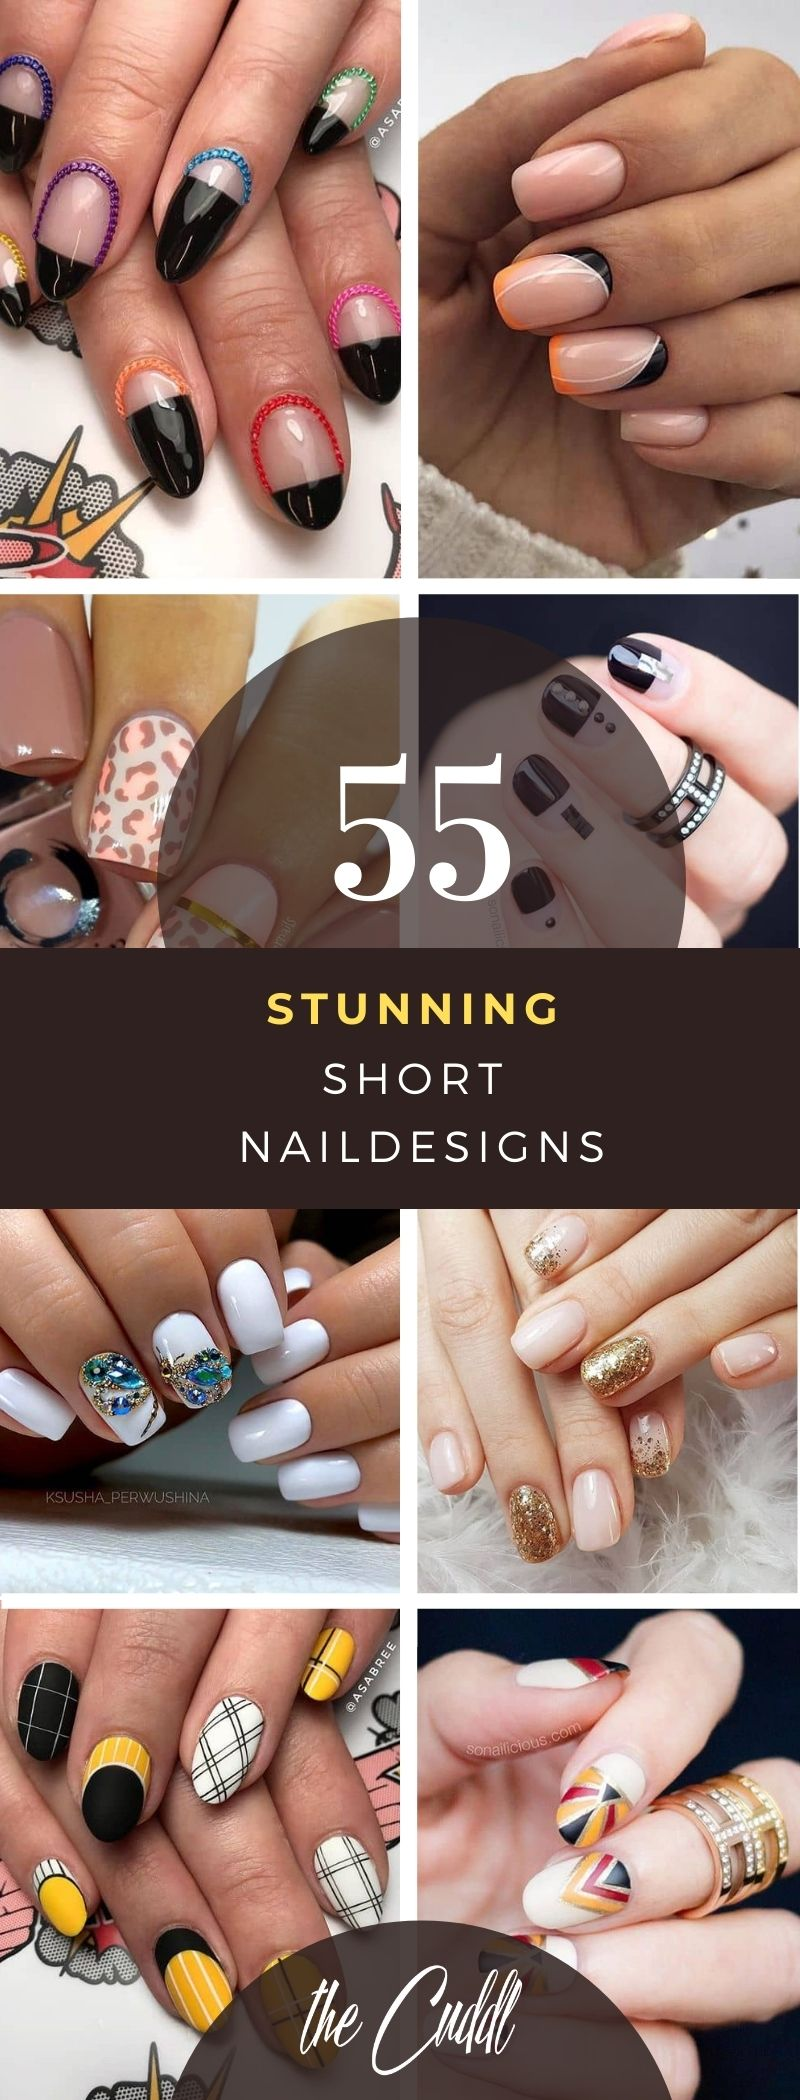 55 Creative Nail Designs for Short Nails to Create Unique Styles